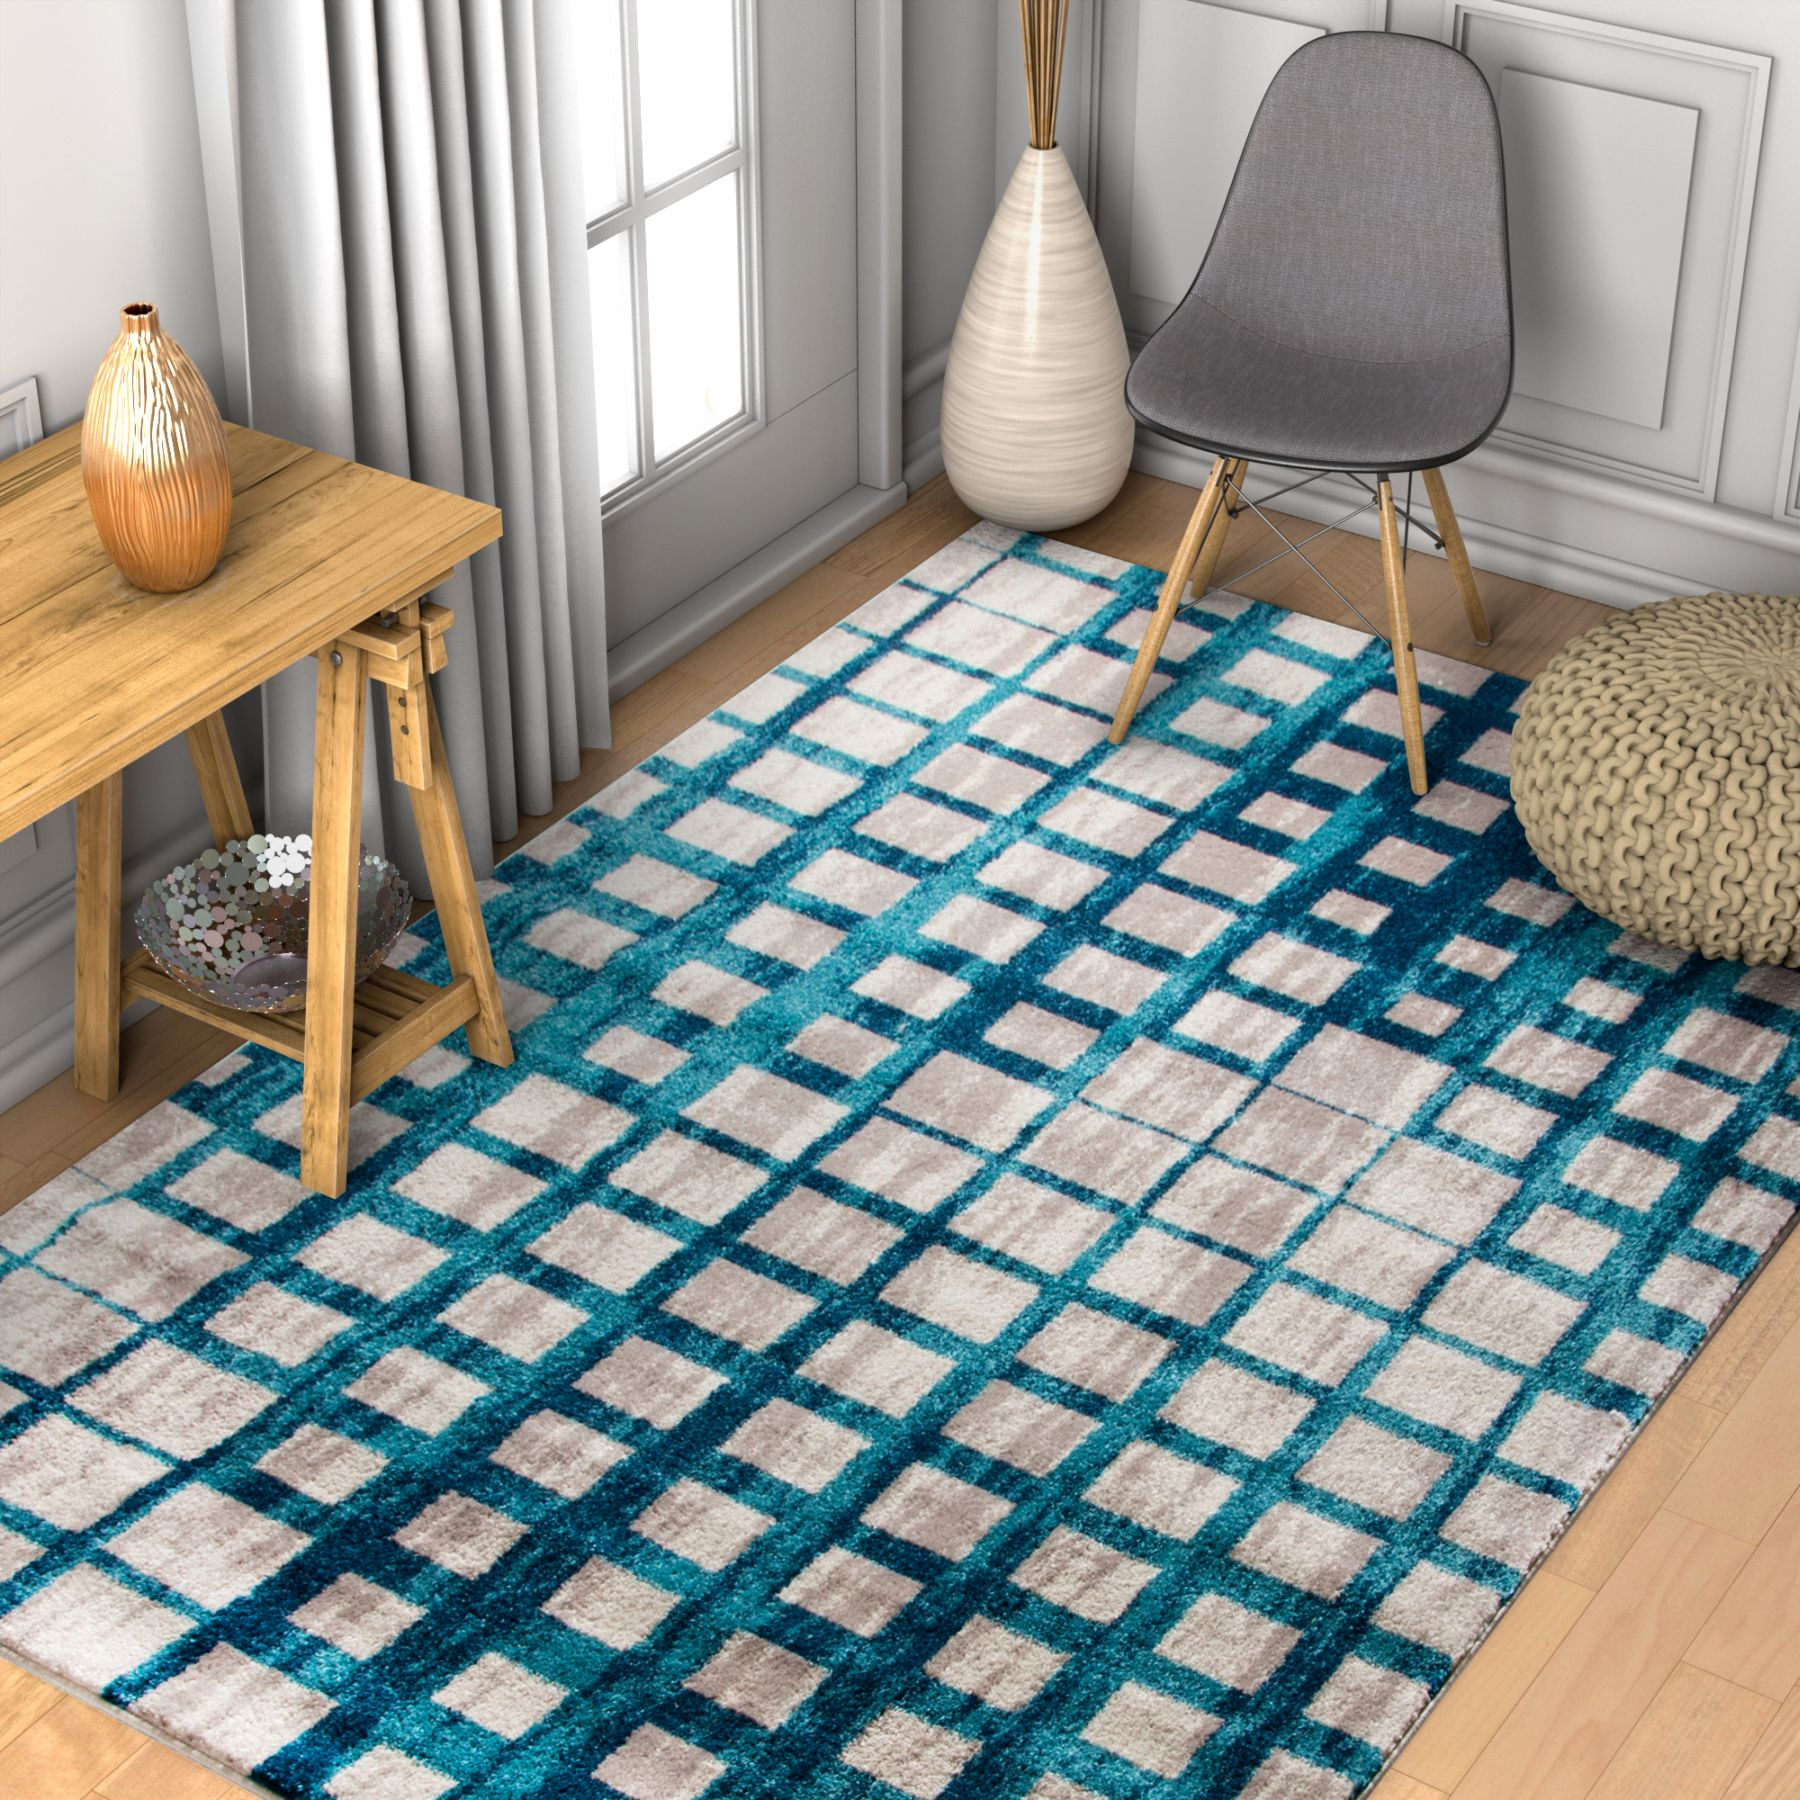 Well Woven Vettore Fortuna Lavender Modern Plaid Geometric Area Rug